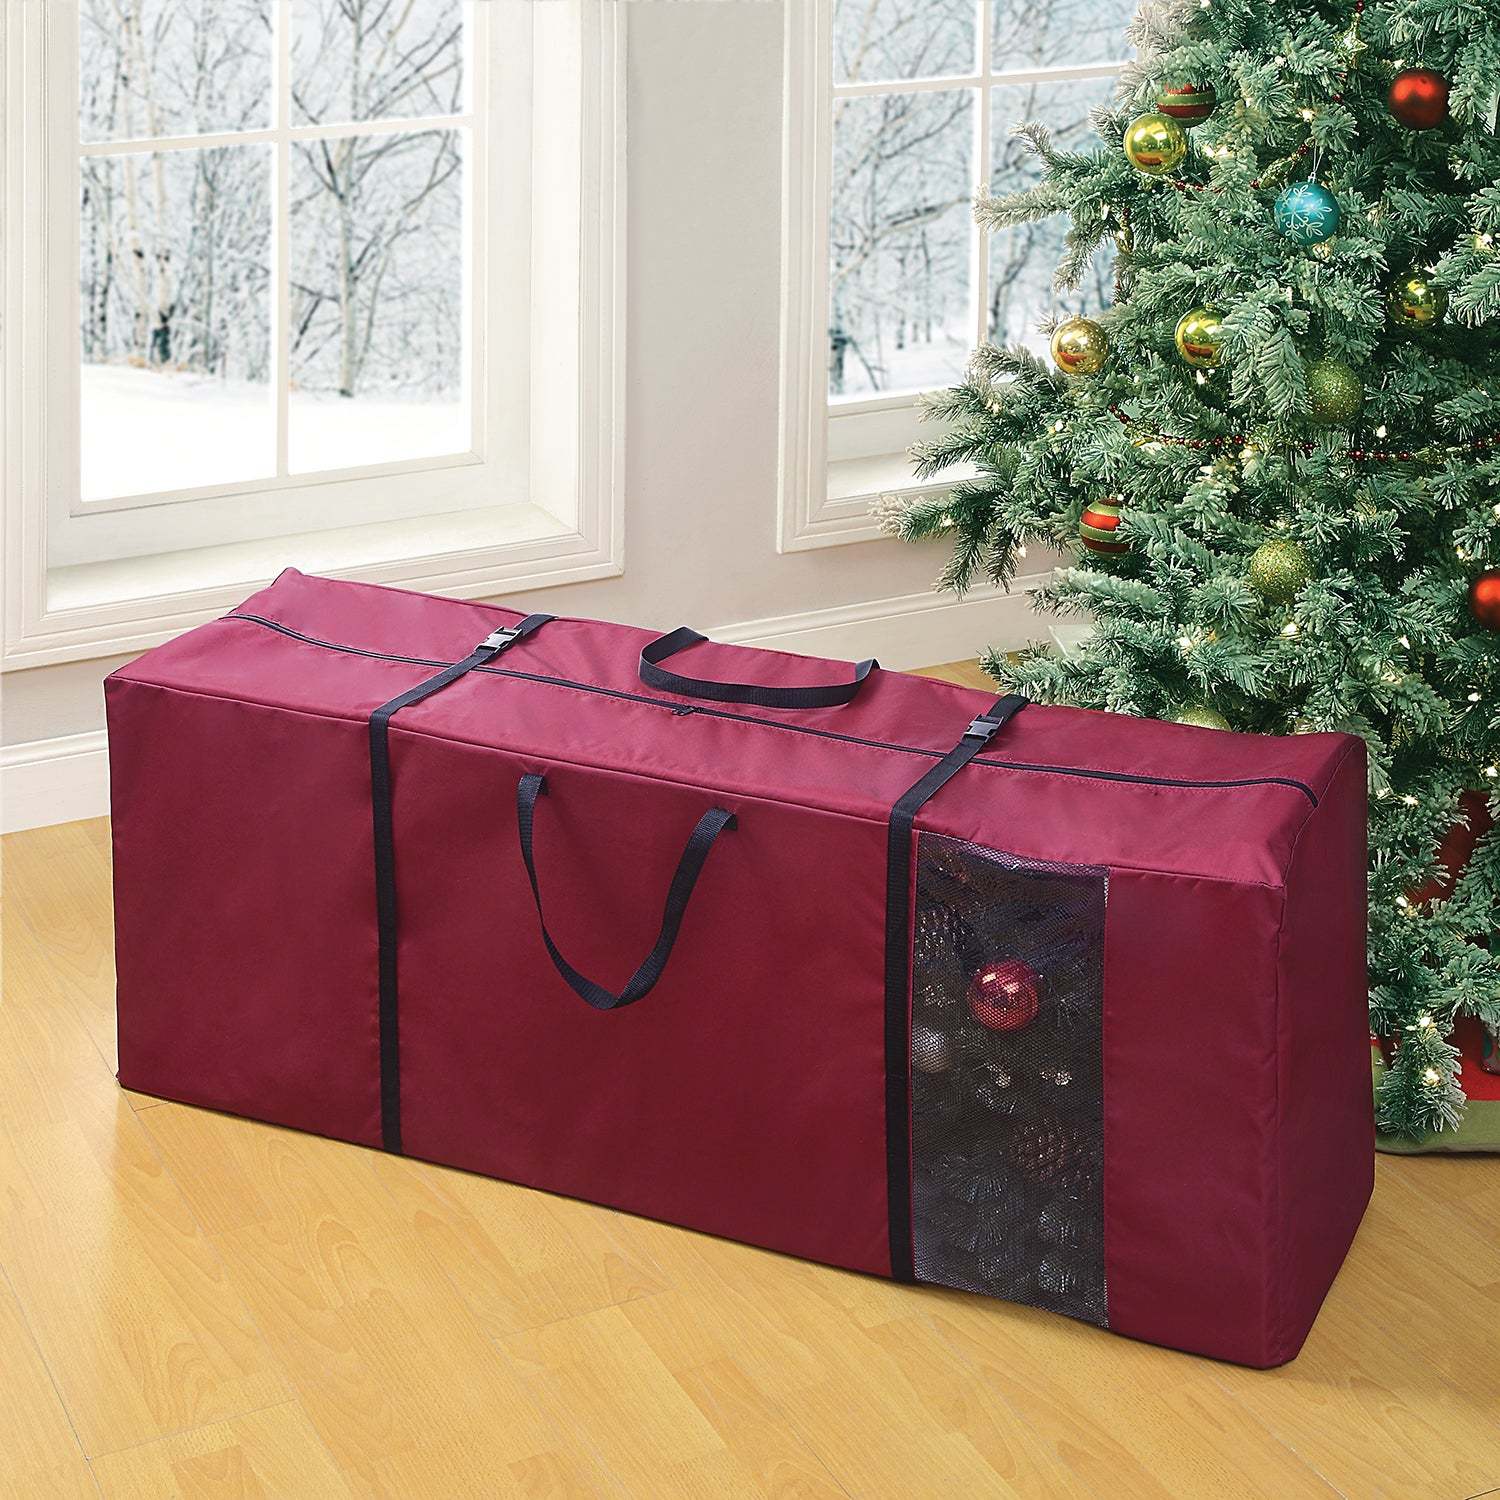 Details About Organize It All Christmas Tree Storage Bag